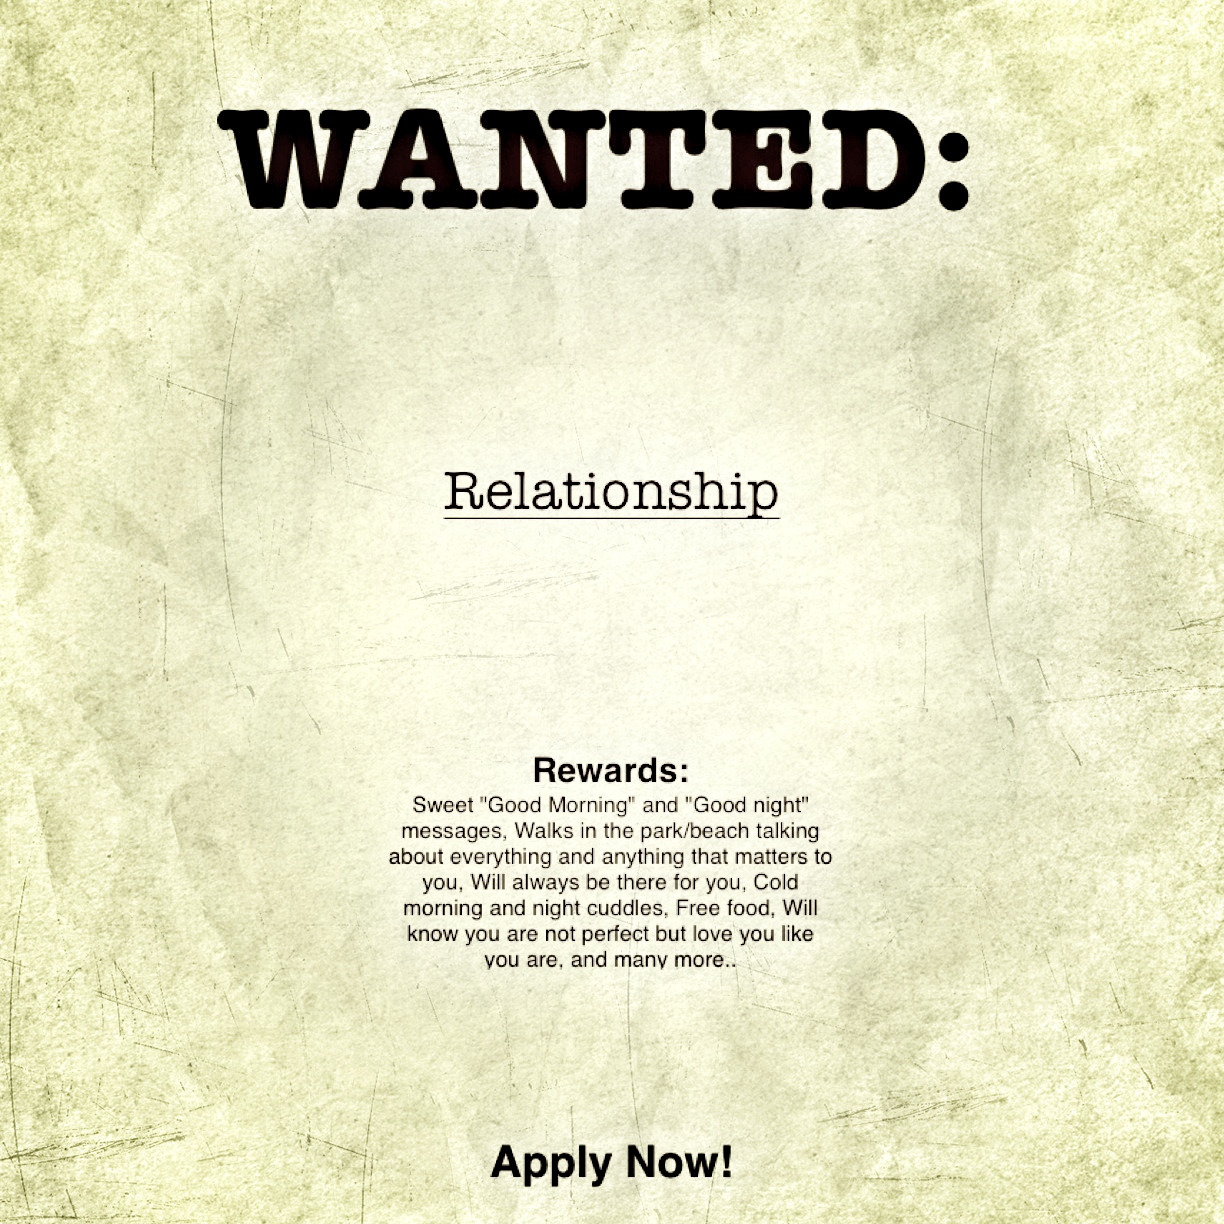 Wanted: Relationship